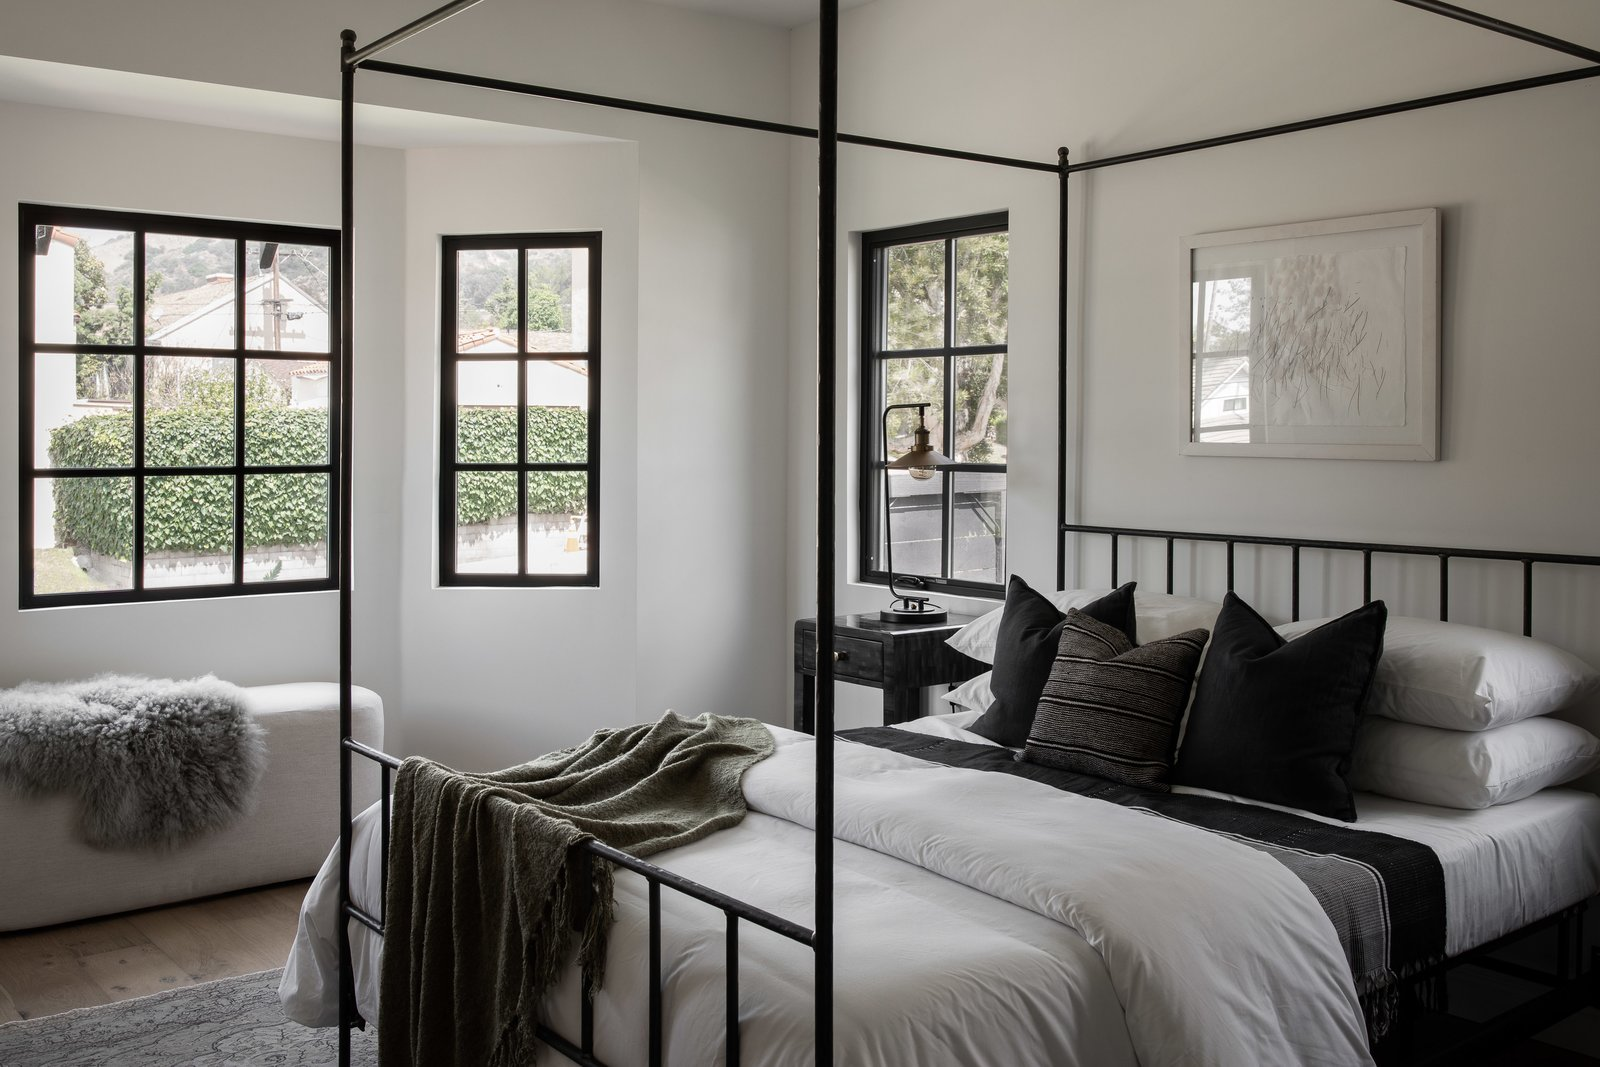 Bedroom in Tudor Renovation by VEIN Design and Bungalowe